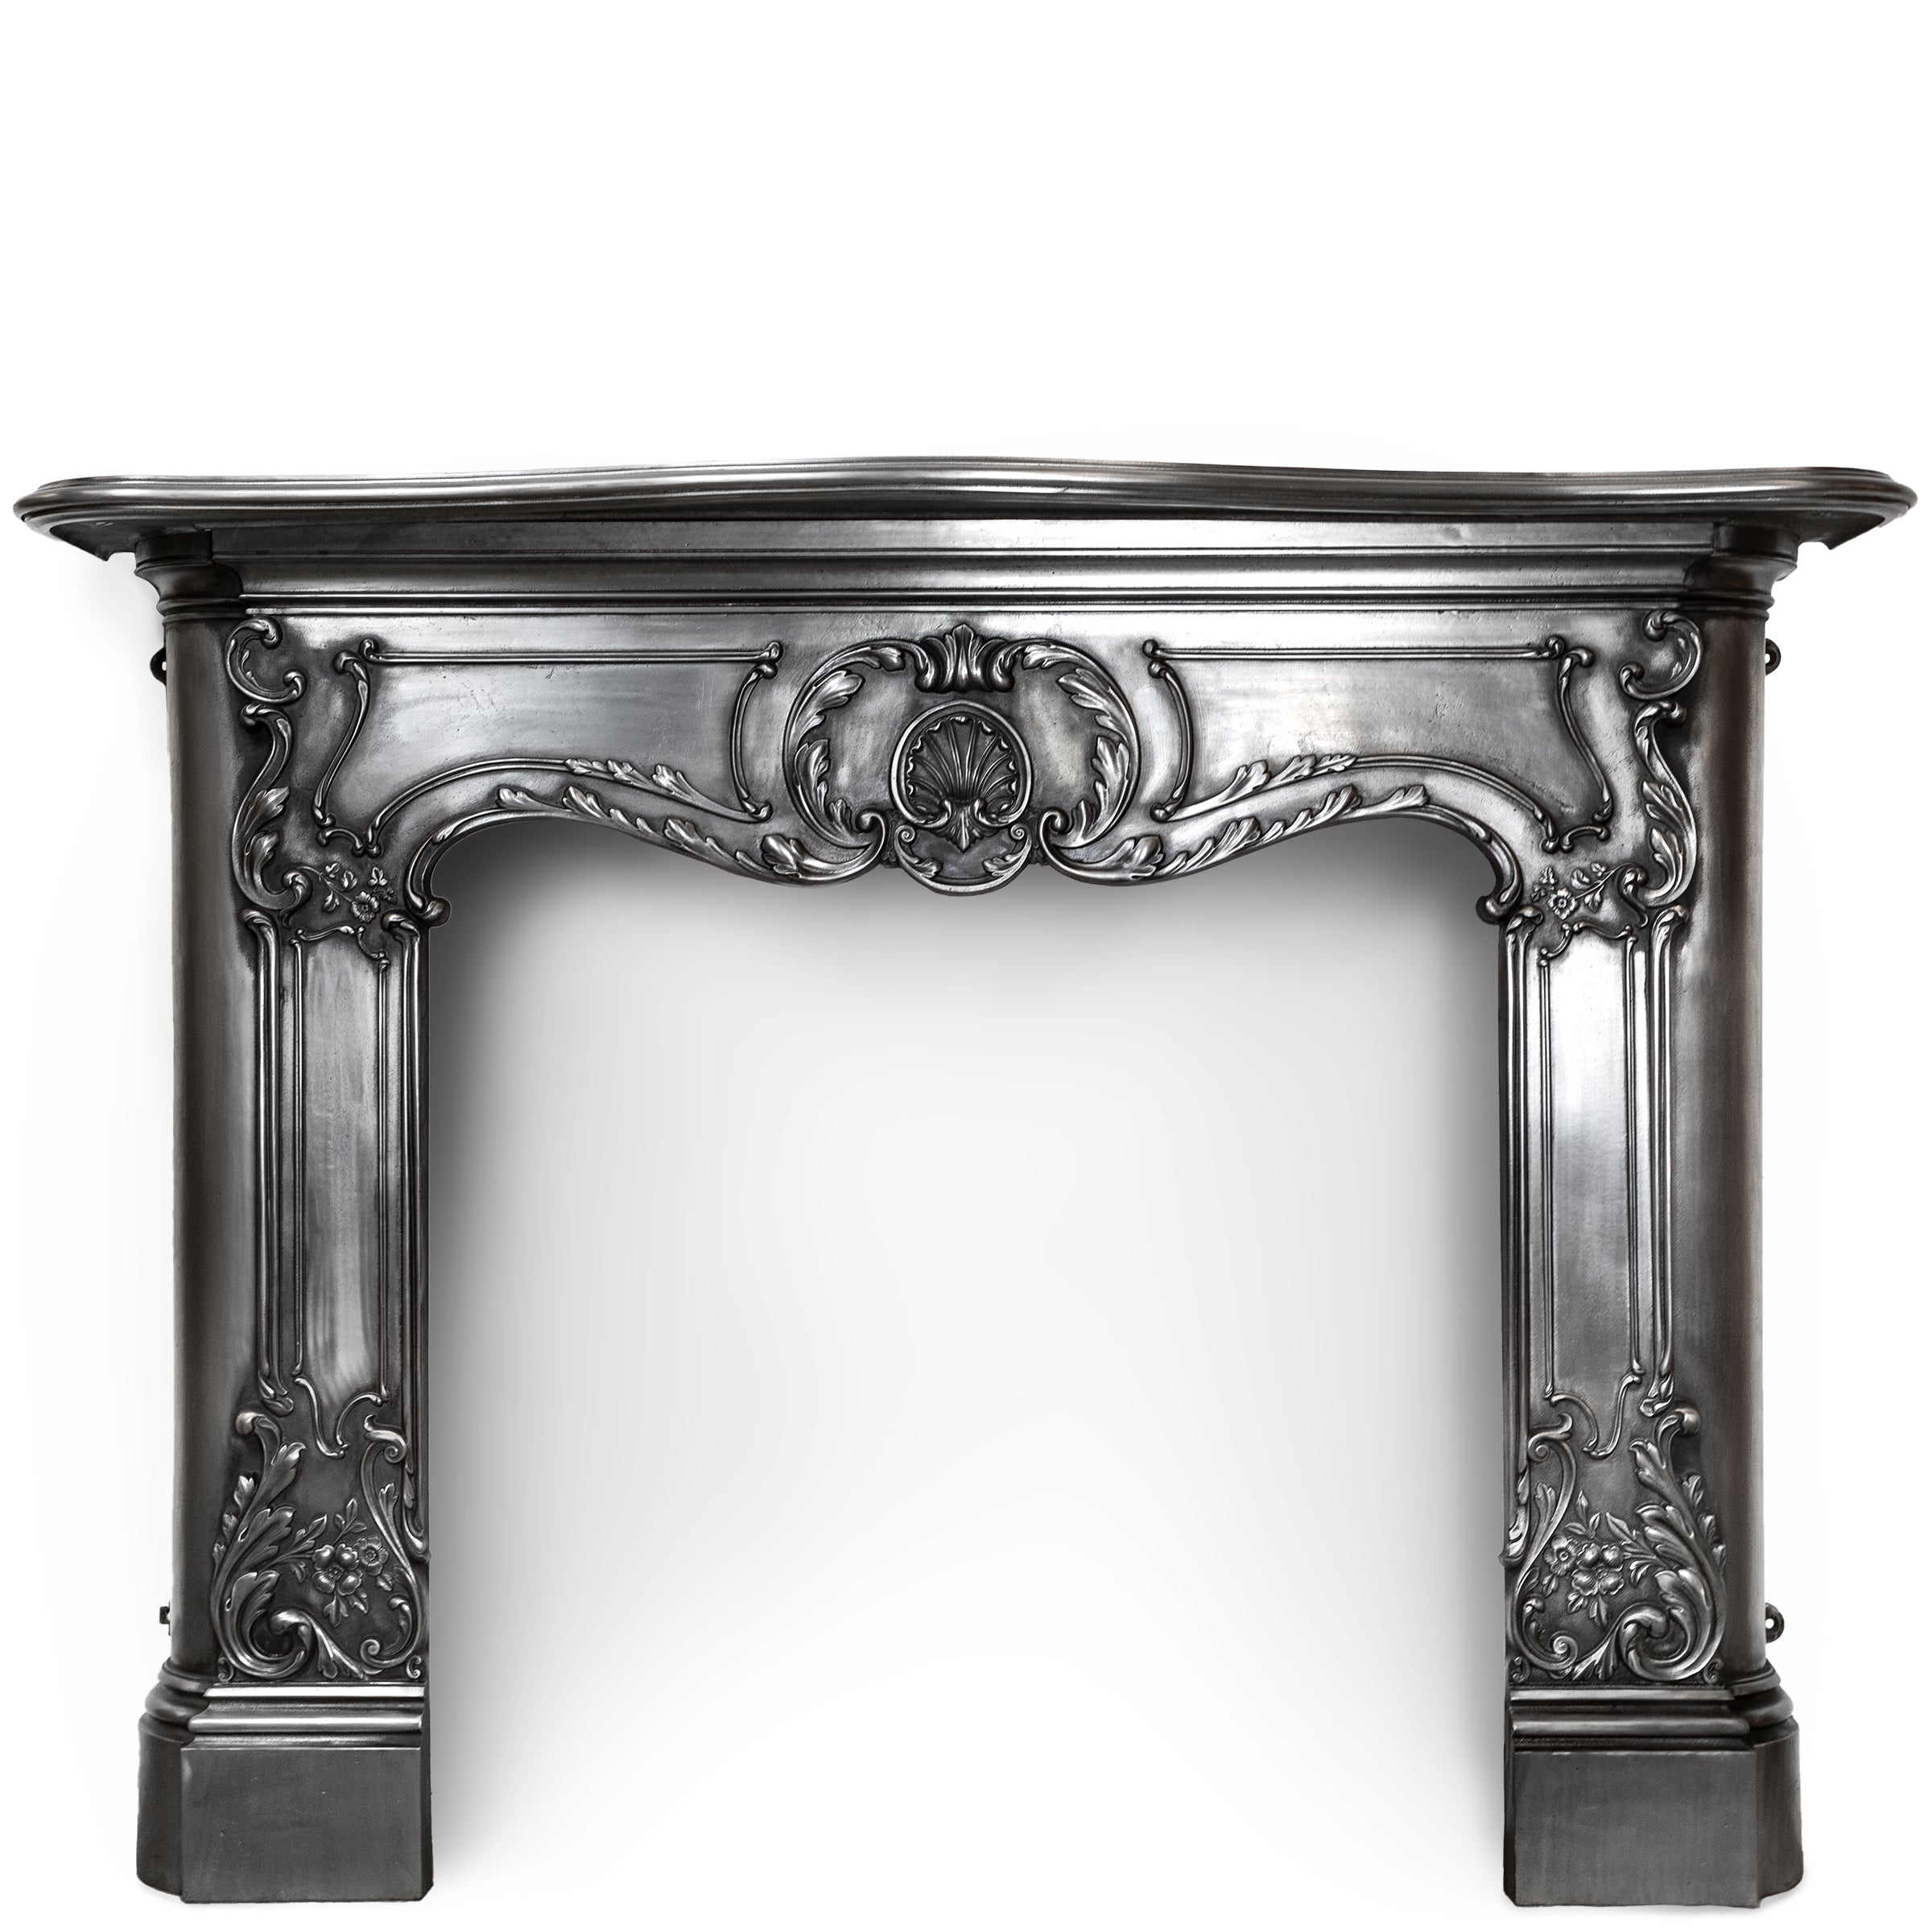 Antique Victorian Rococo Style Ornate Polished Cast Iron Fireplace Surround